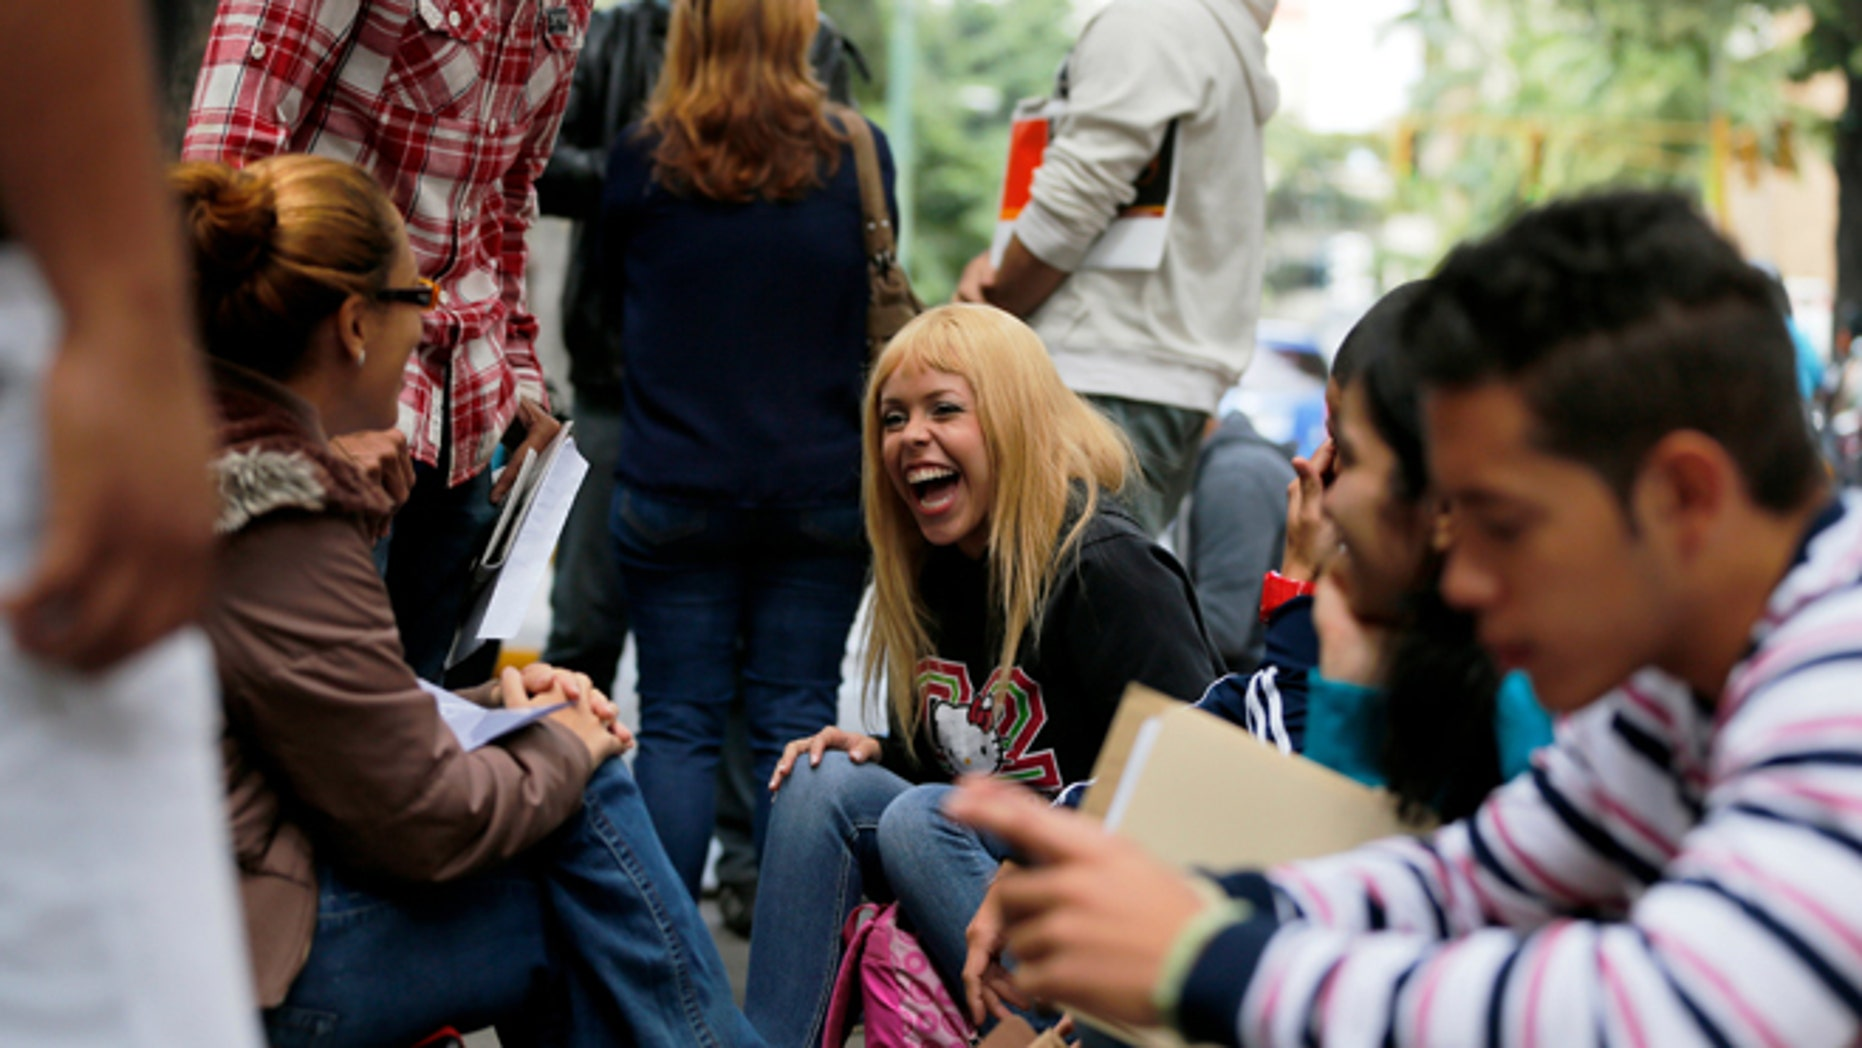 """In this Jan. 28, 2014 photo, Daniela Rodriguez laughs with friends as she waits outside Ireland's consulate in Caracas, Venezuela. Venezuela's best and brightest are abandoning their homeland in droves. """"I'll blindly go anywhere,"""" said Rodriguez, who has been unable to find work as a journalist since graduating college in 2010, so instead works as a sales clerk at a clothing store. (AP Photo/Fernando Llano)"""